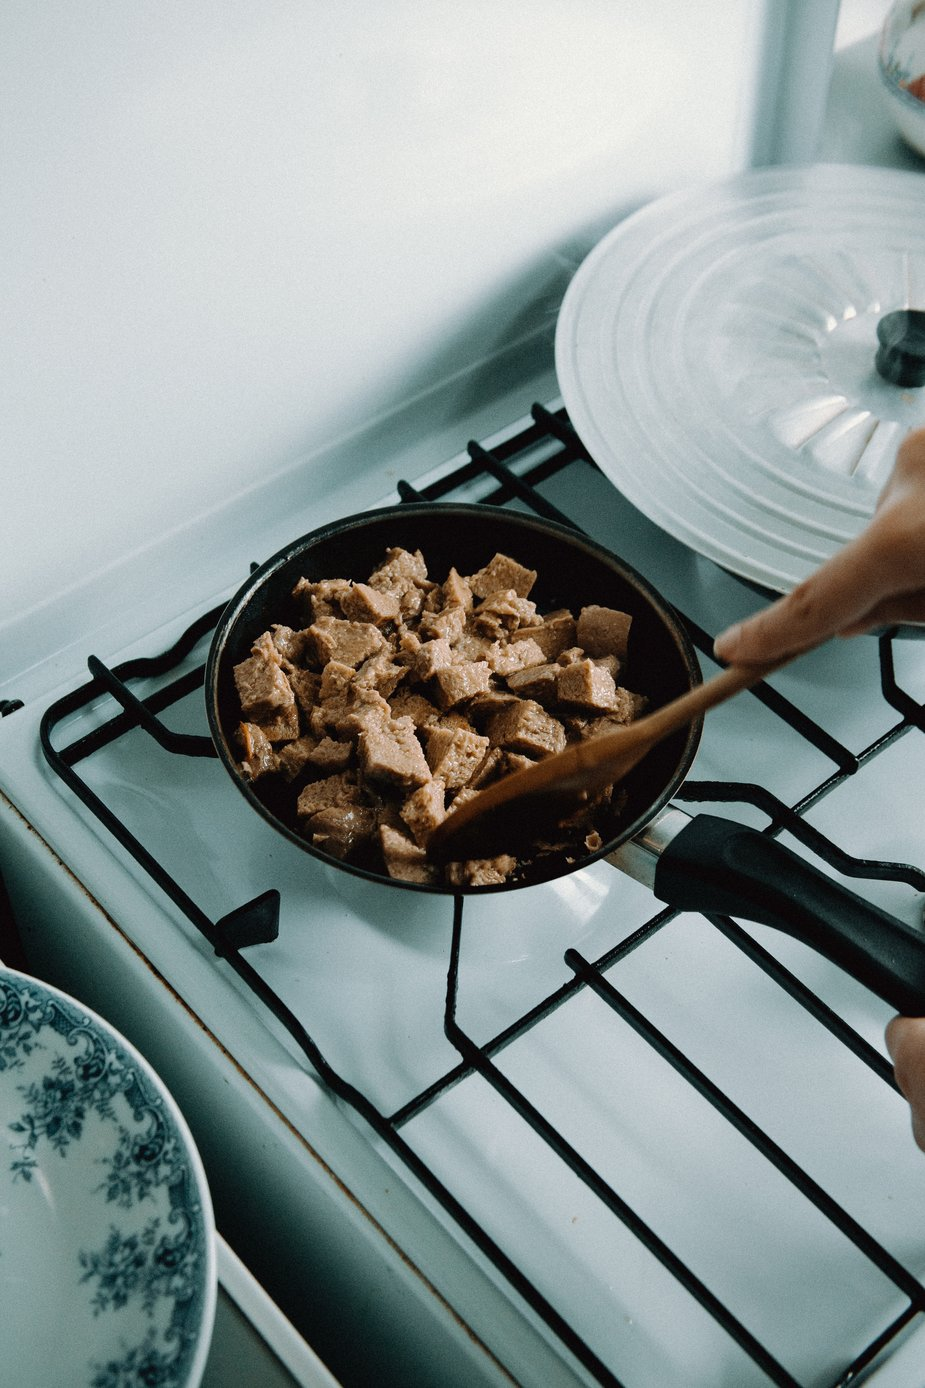 mixing plant-based meat on the stove